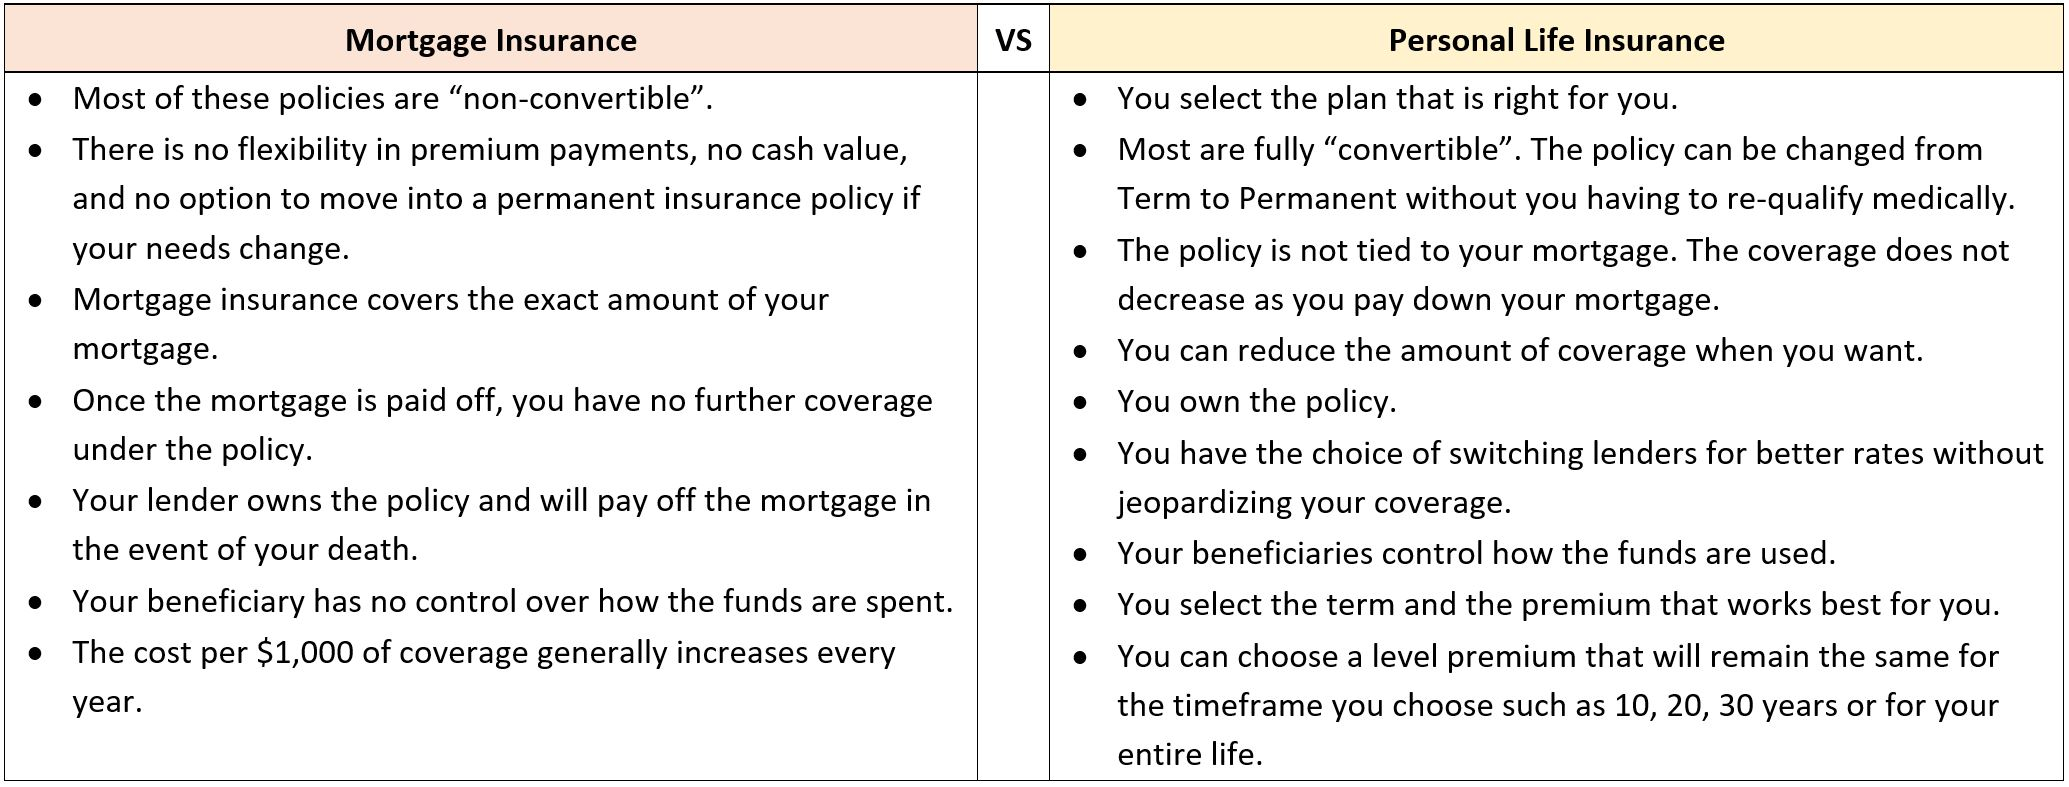 Table comparing the differences between mortgage insurance and personal life insurance.